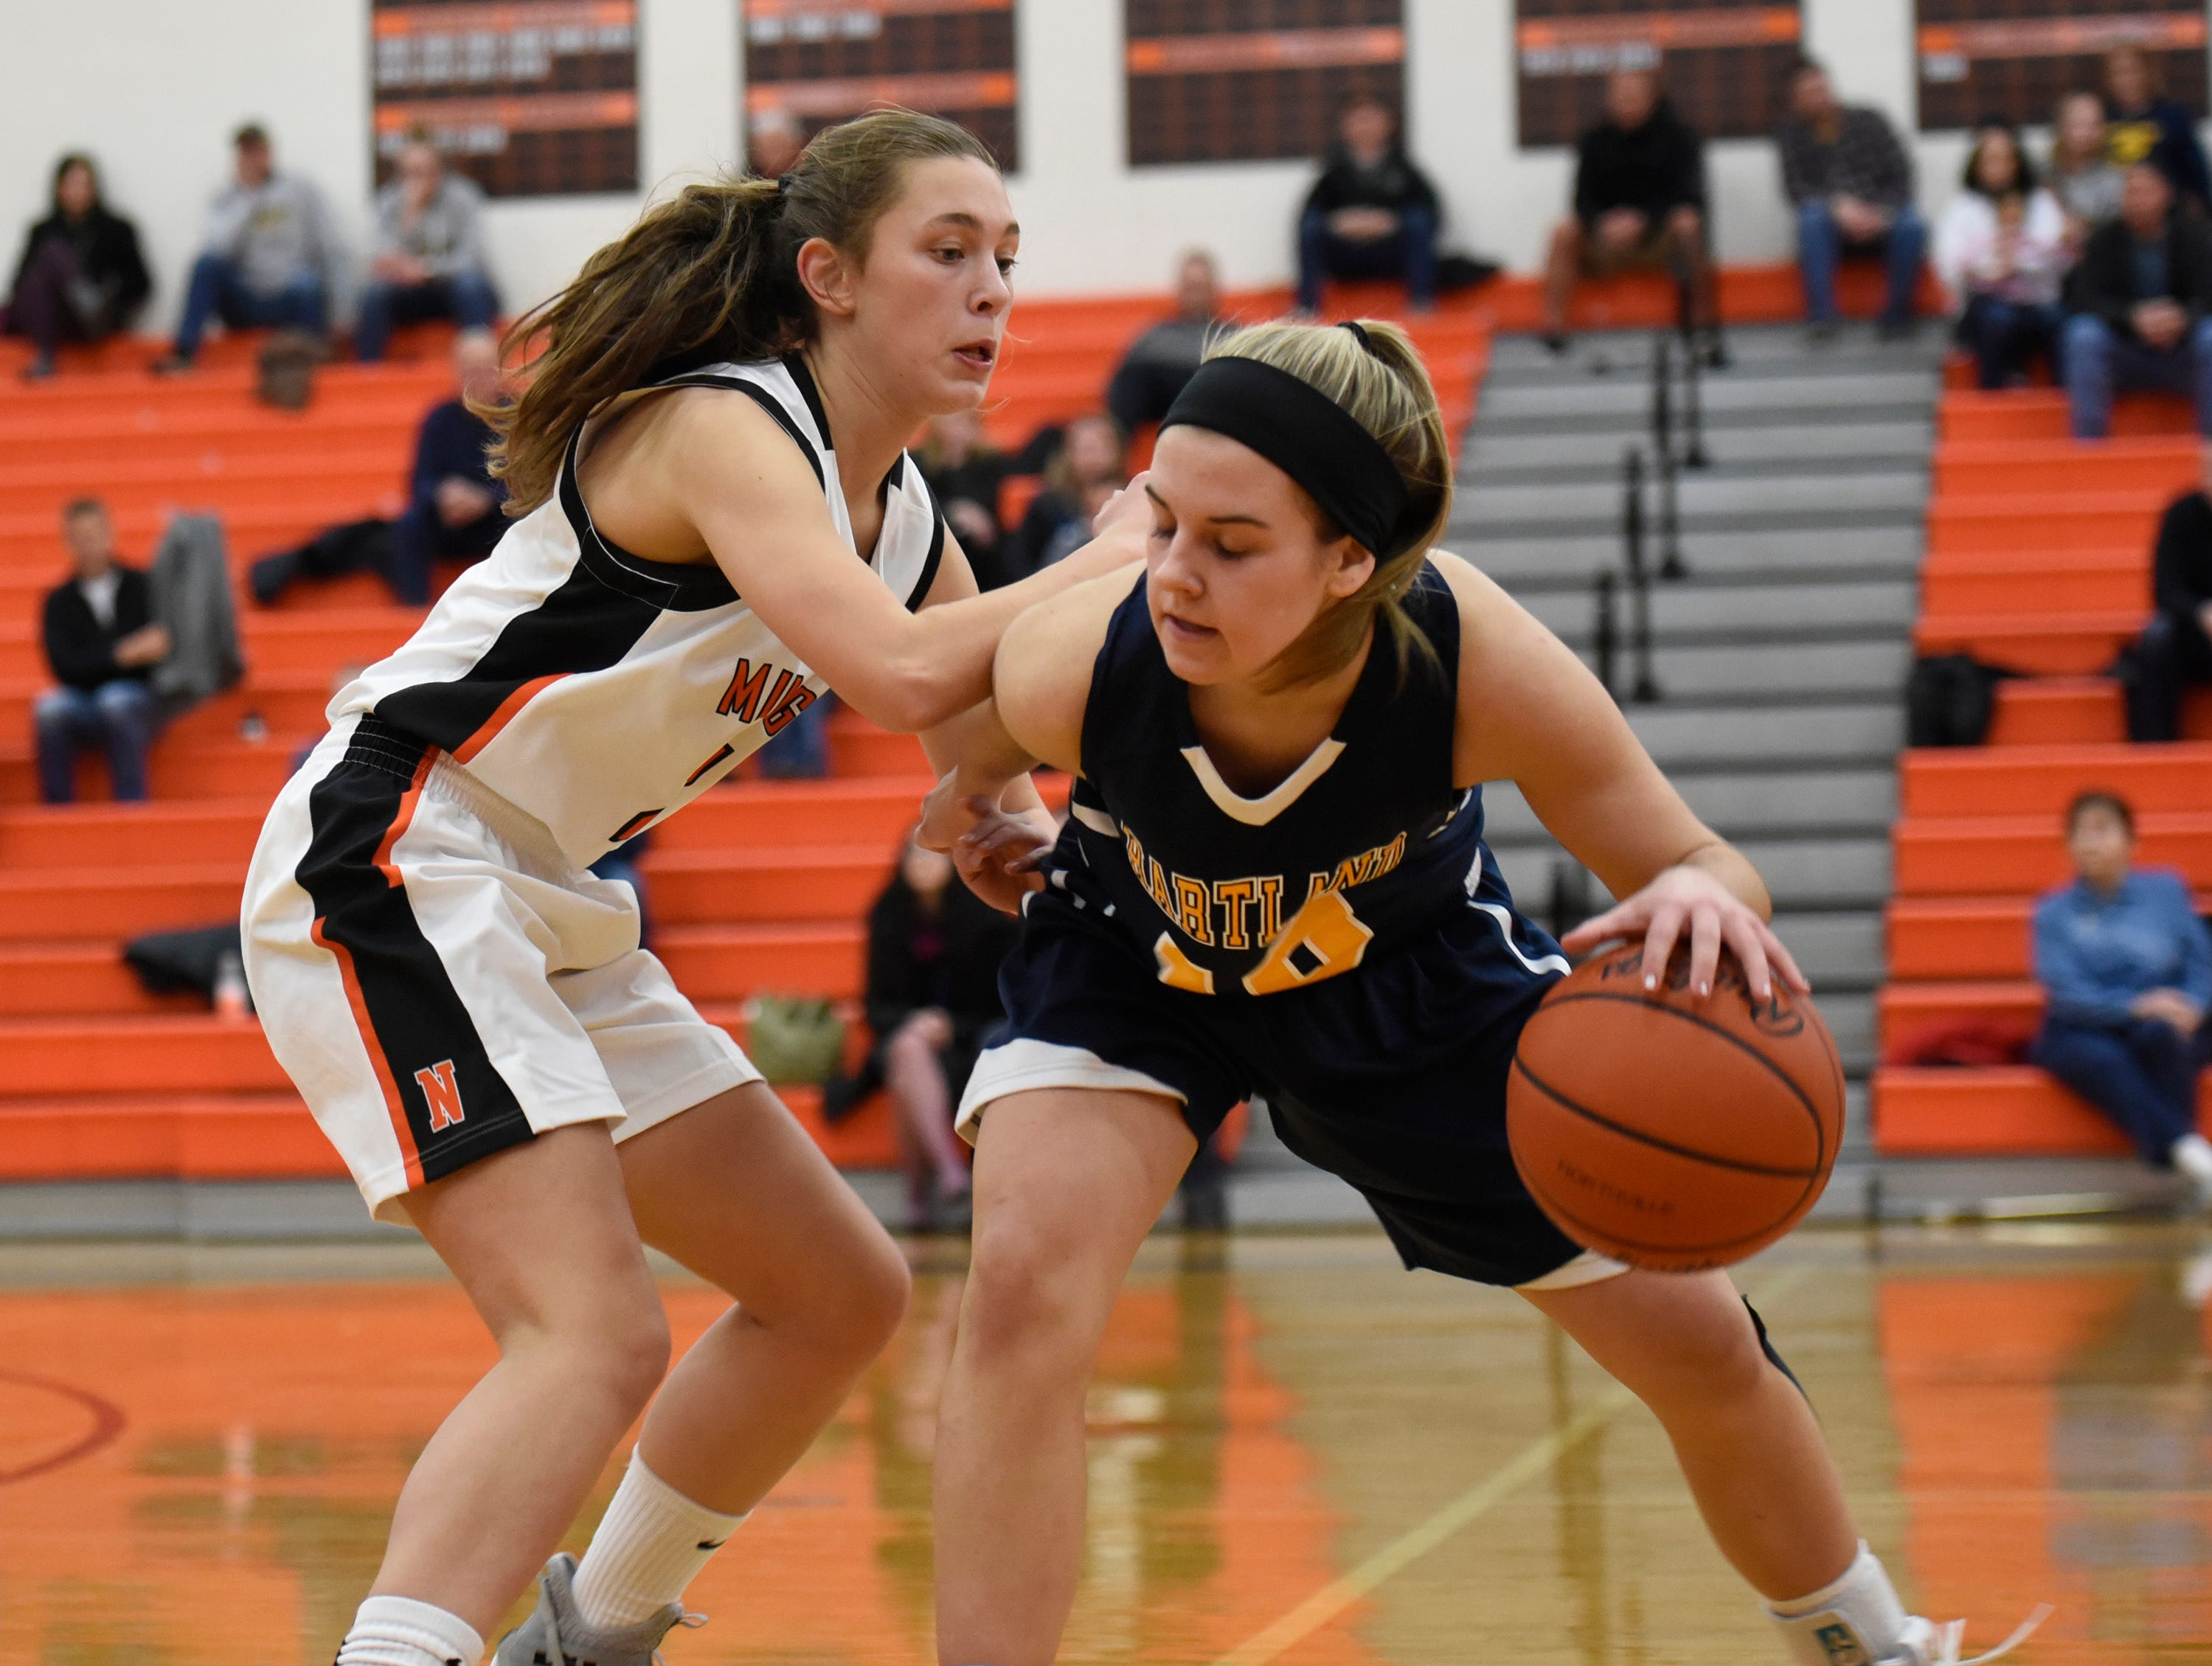 Hartland's Nikki Dompierre (10) and Northville's Sophia Jeromsky (21) during a KLAA match up between the Mustangs and Eagles at Northville Jan. 8, 2019